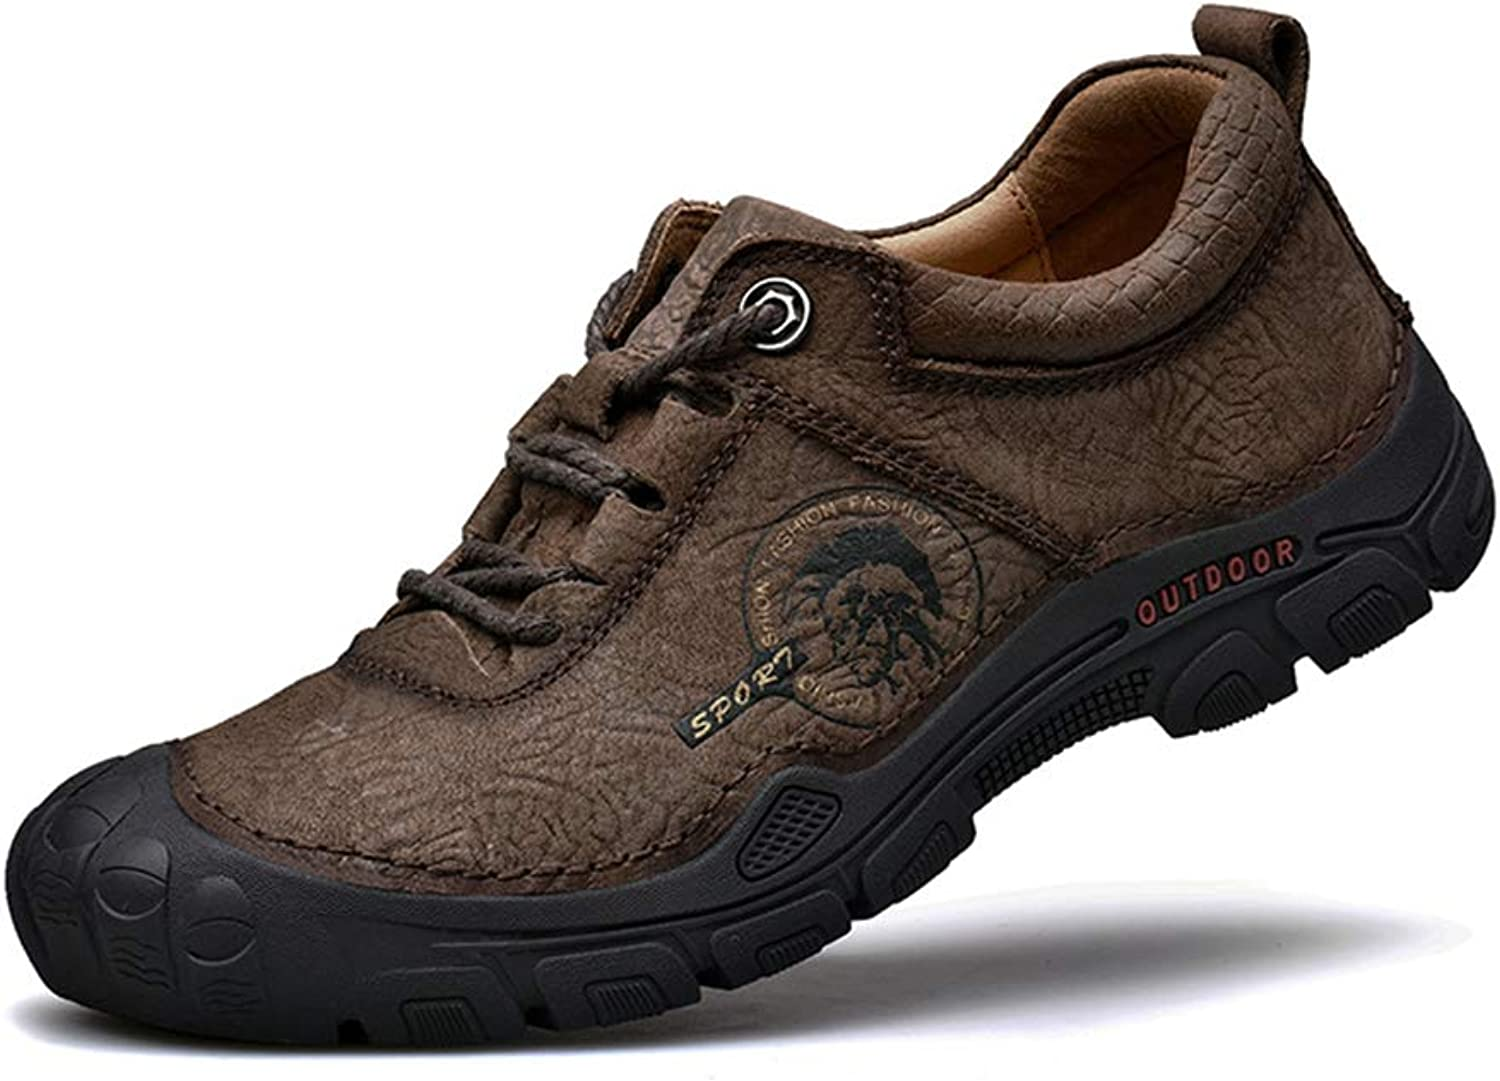 KANGLE Men'S Outdoor Sports Hiking shoes Leather Breathable Casual shoes Non-Slip Waterproof Walking shoes For Trekking, Travelling,Camping, Biking